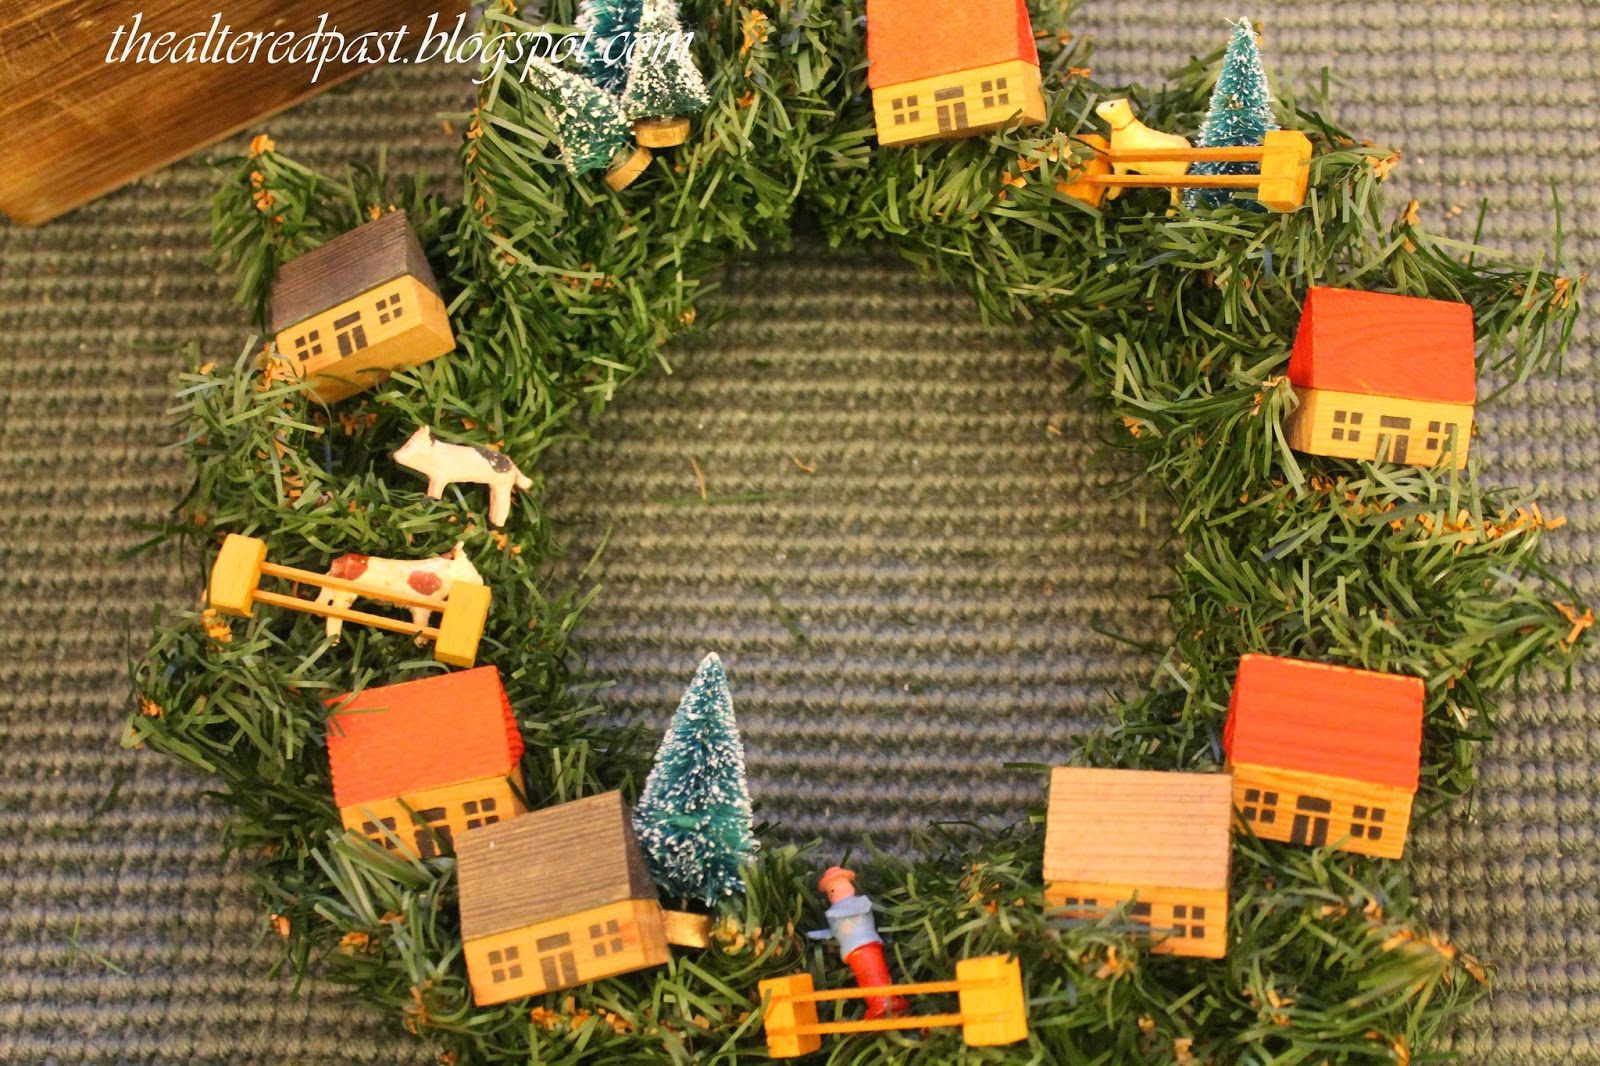 vintage farm village snow wreath, the altered past